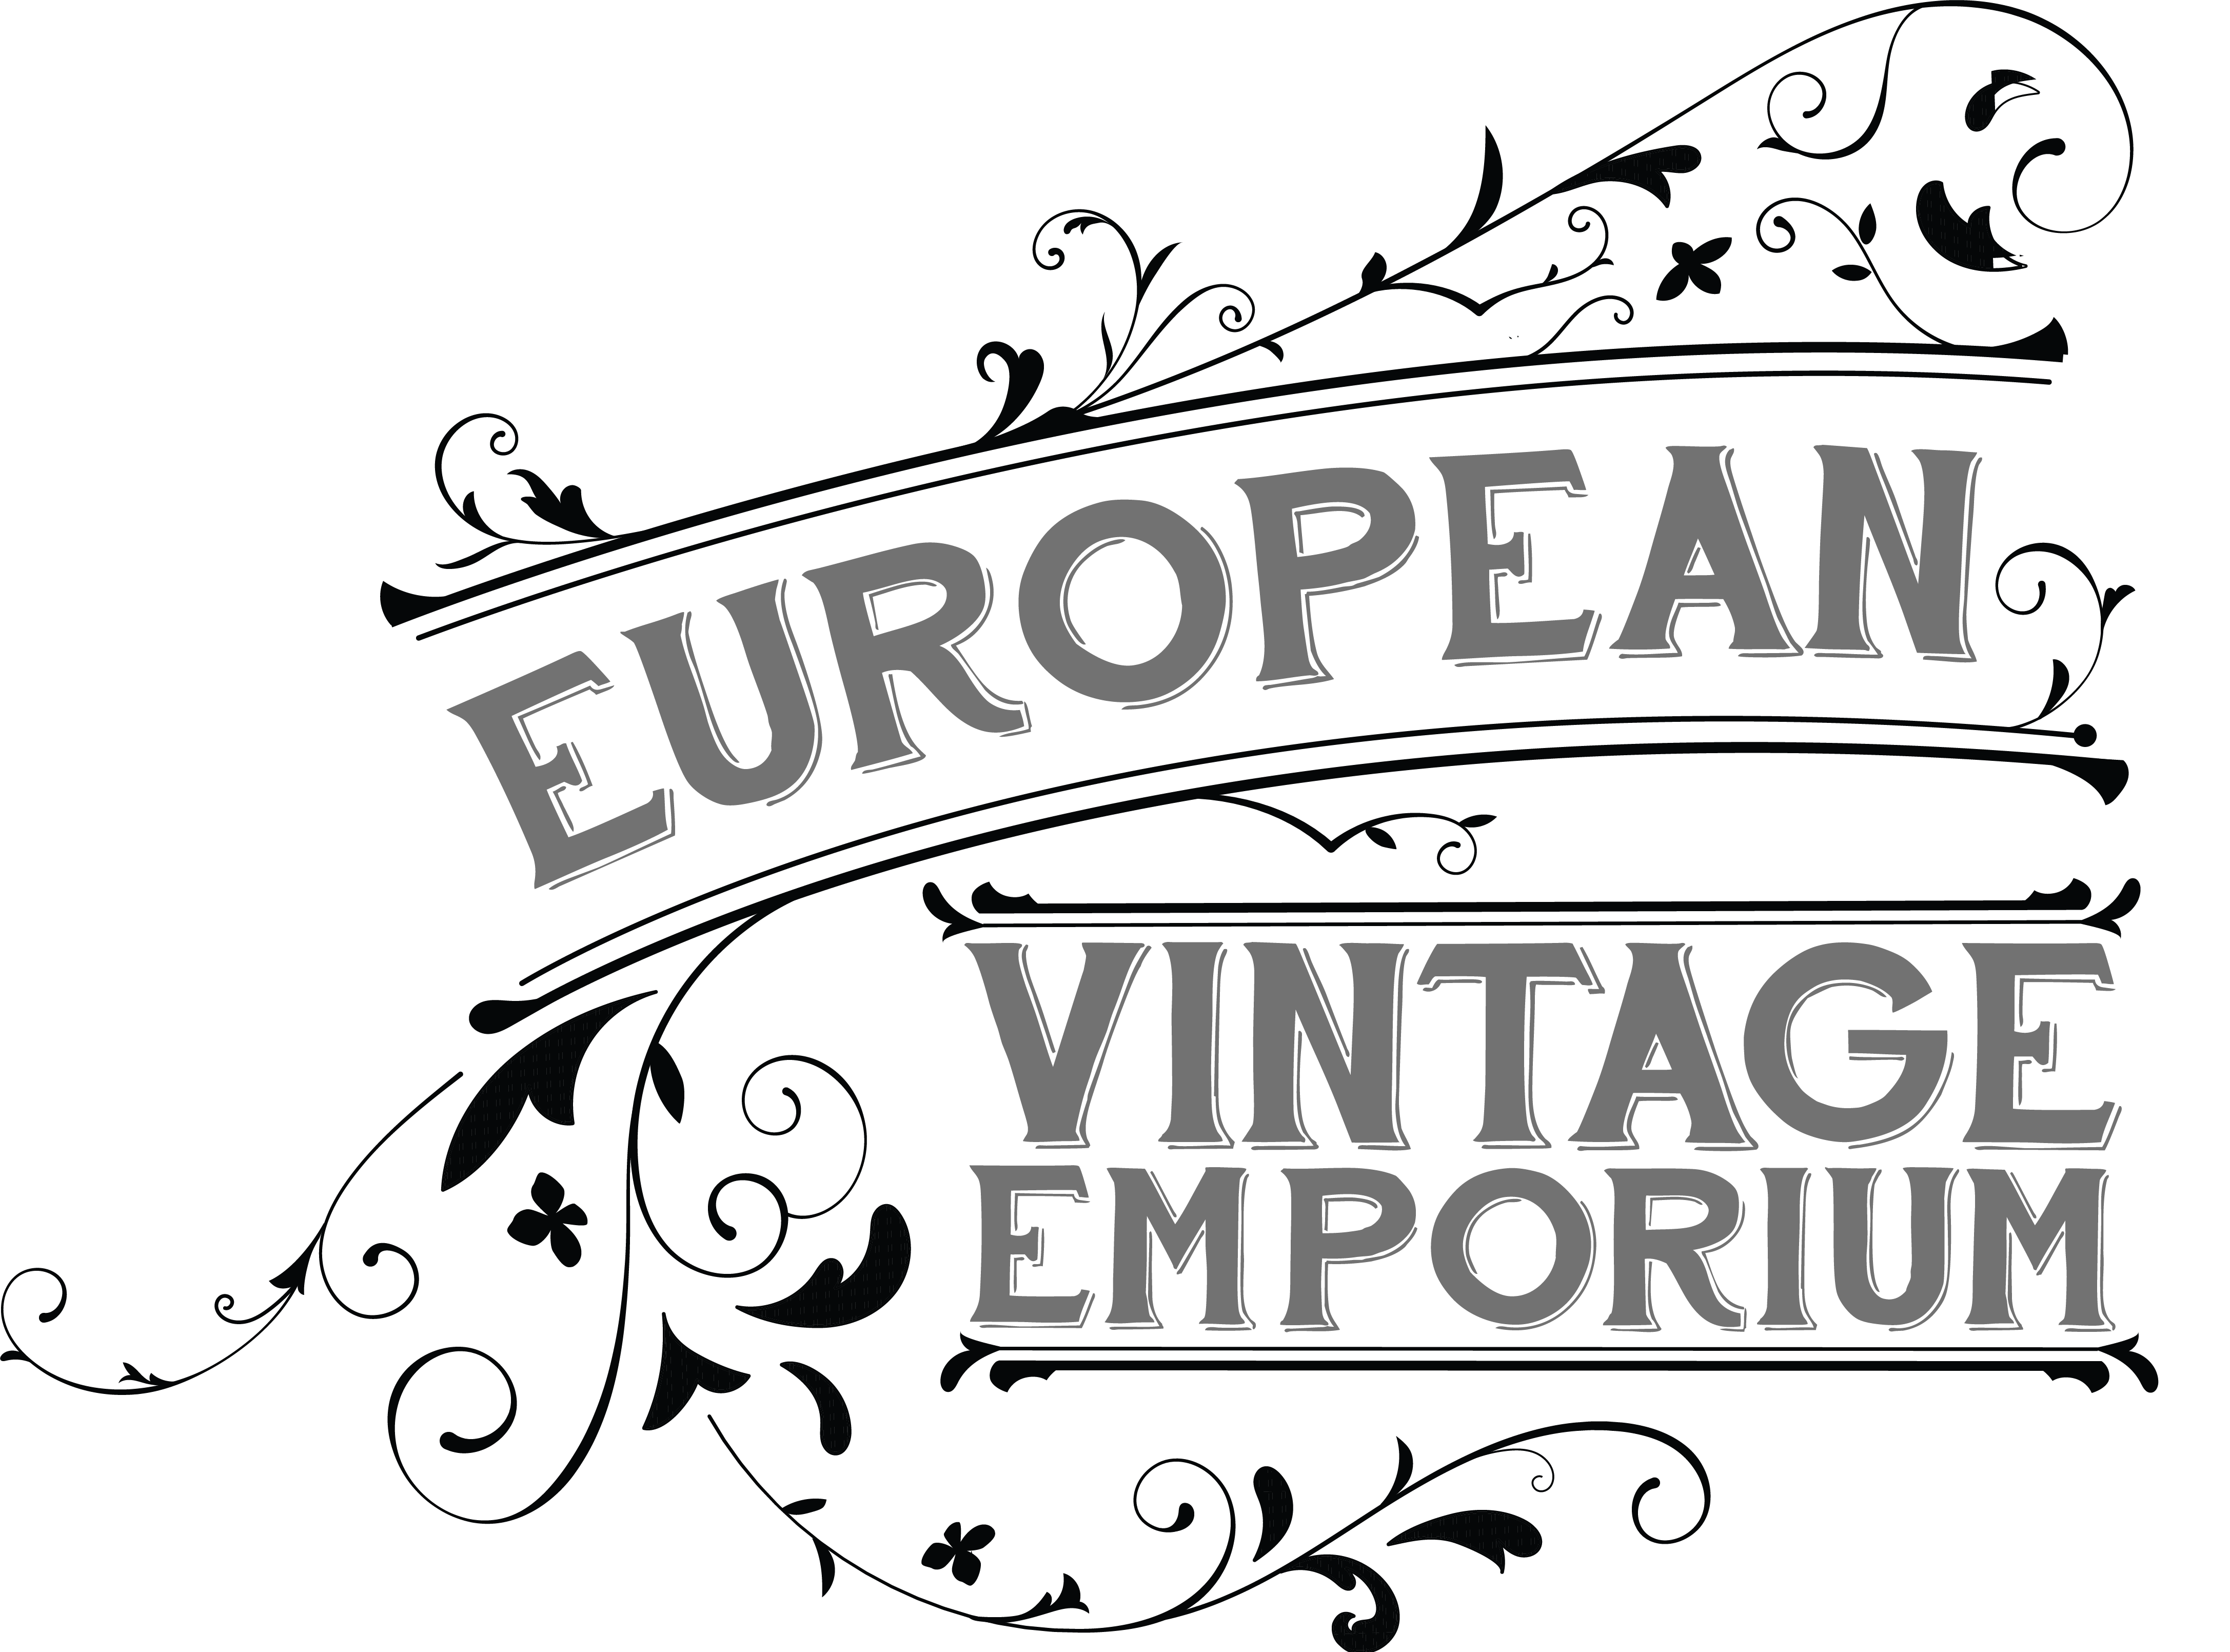 European Vintage Emporium